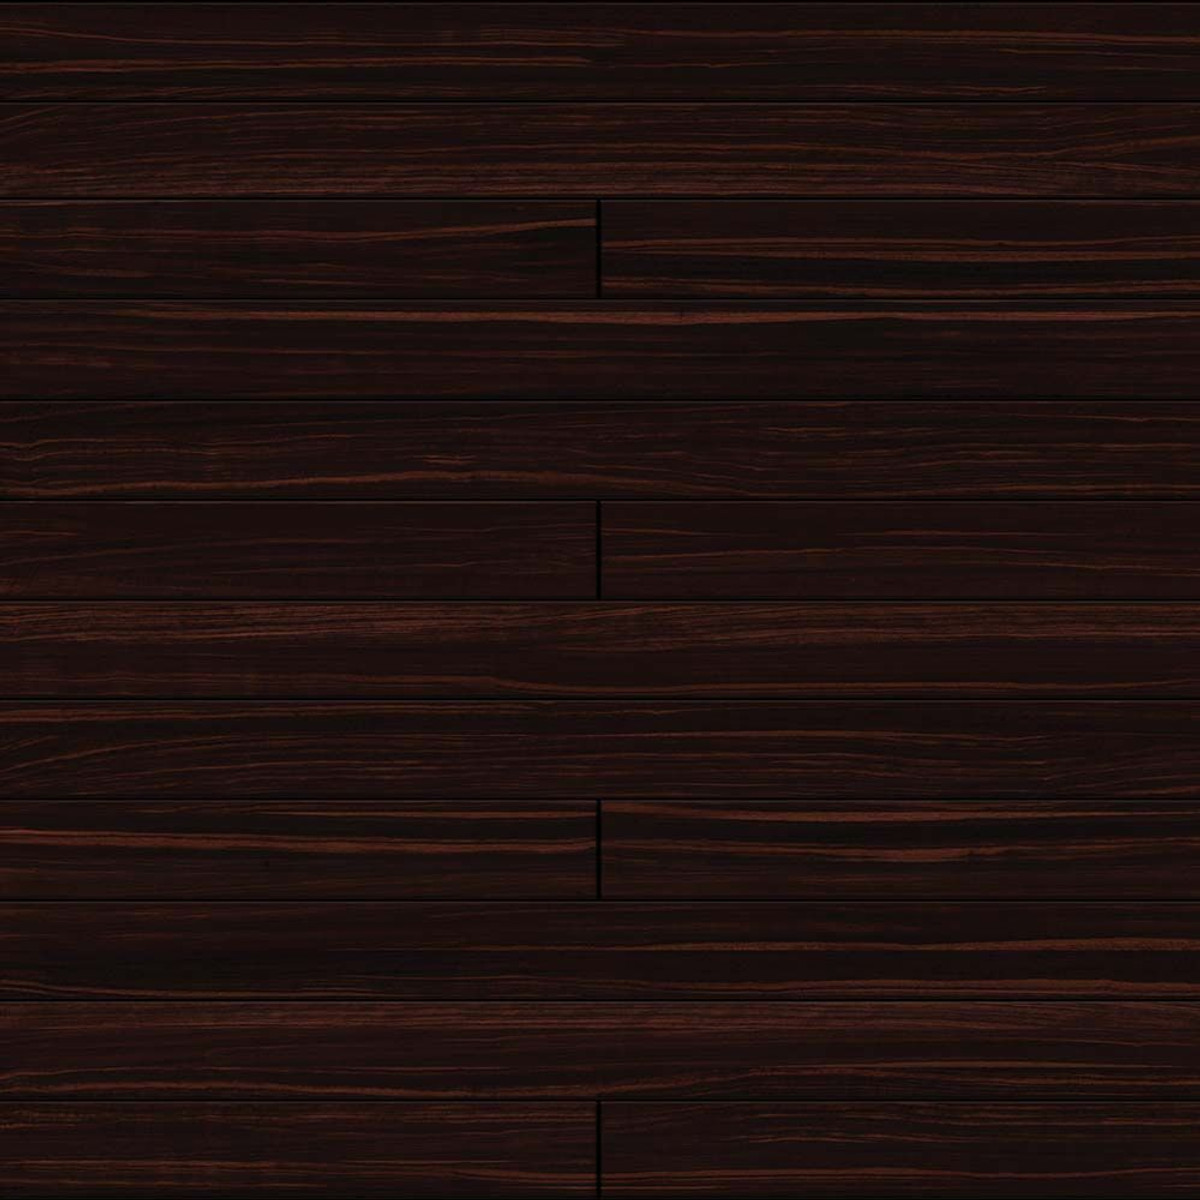 Mahogany Wood Plank Tile   Perfection Floor Tile Interlocking Luxury Vinyl  PVC Tile ...